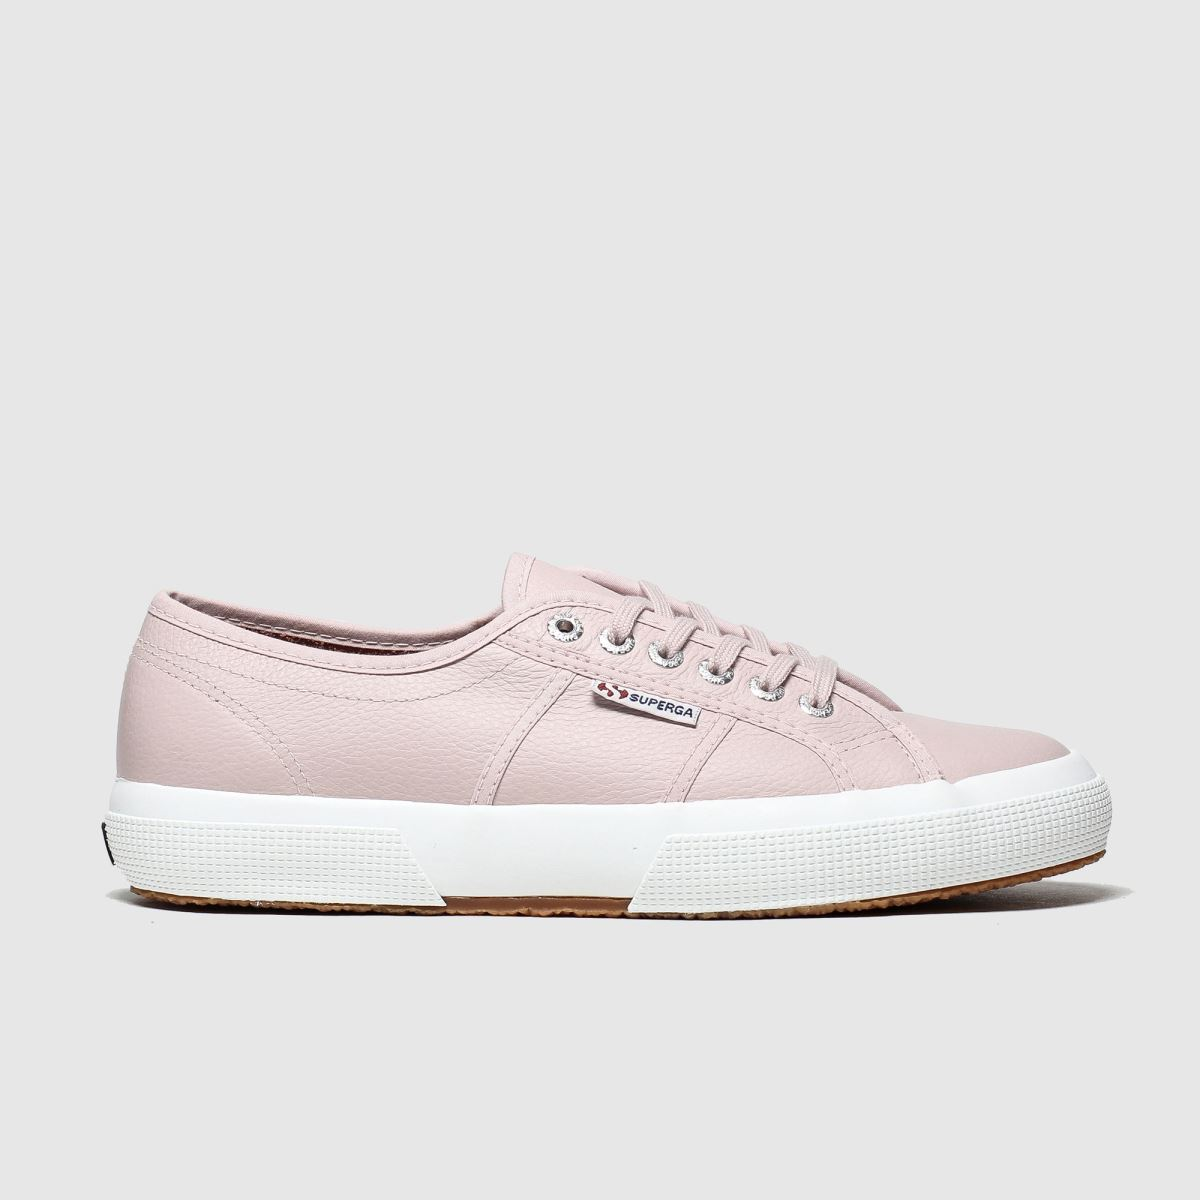 Superga Pink 2750 Leather Trainers